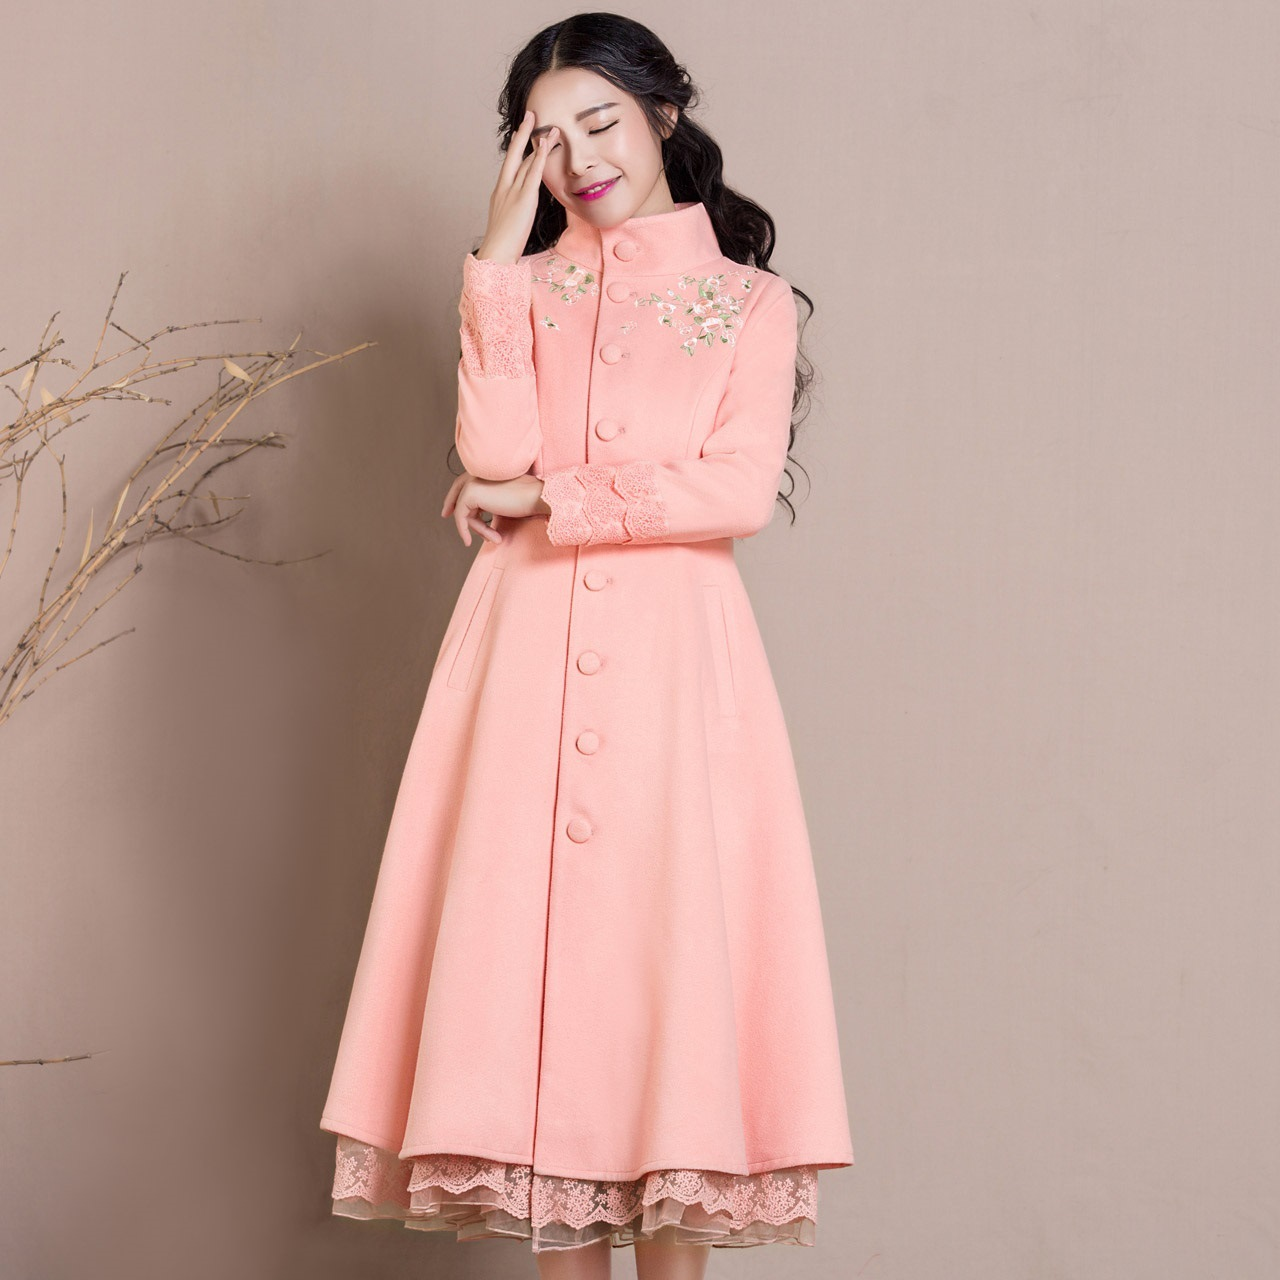 High Quality New Arrival Winter Women Embroidered Flower Long Wool Blends Coat Lady Slim Retro Sweet Pink Dress Coats Overcoat